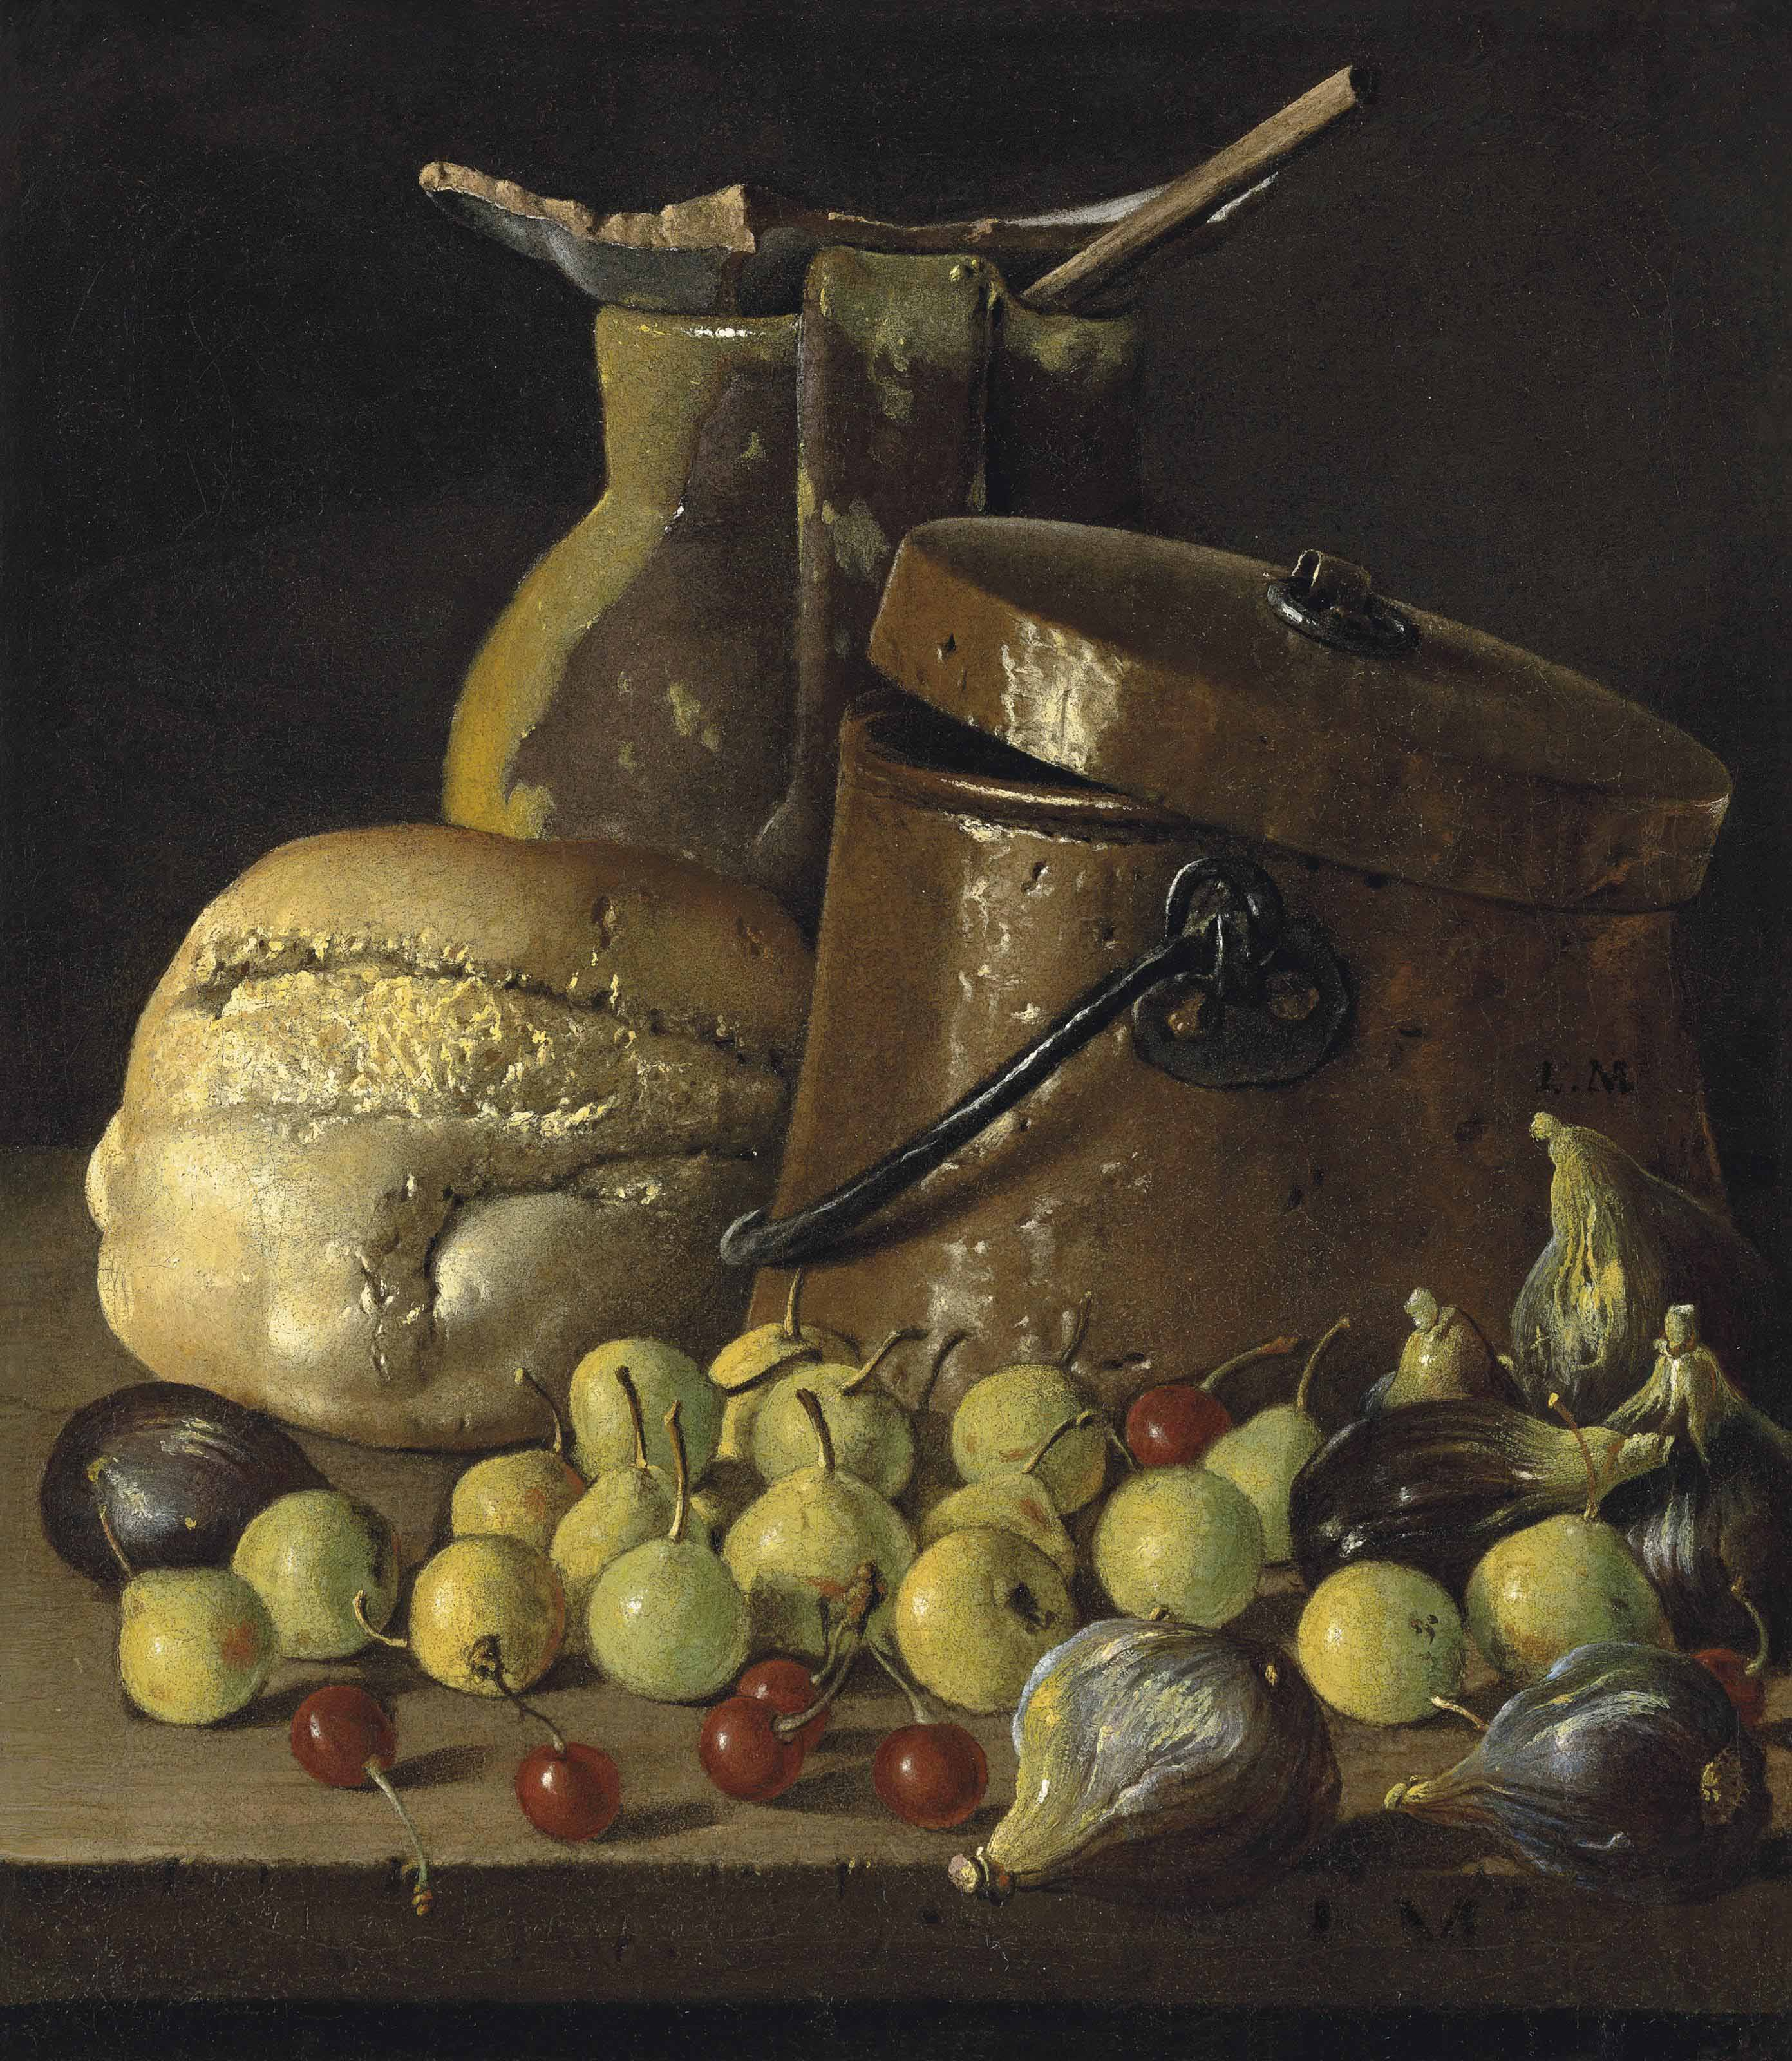 An earthenware pitcher and copper pail, with a bread roll, figs, quinces and cherries on a stone ledge